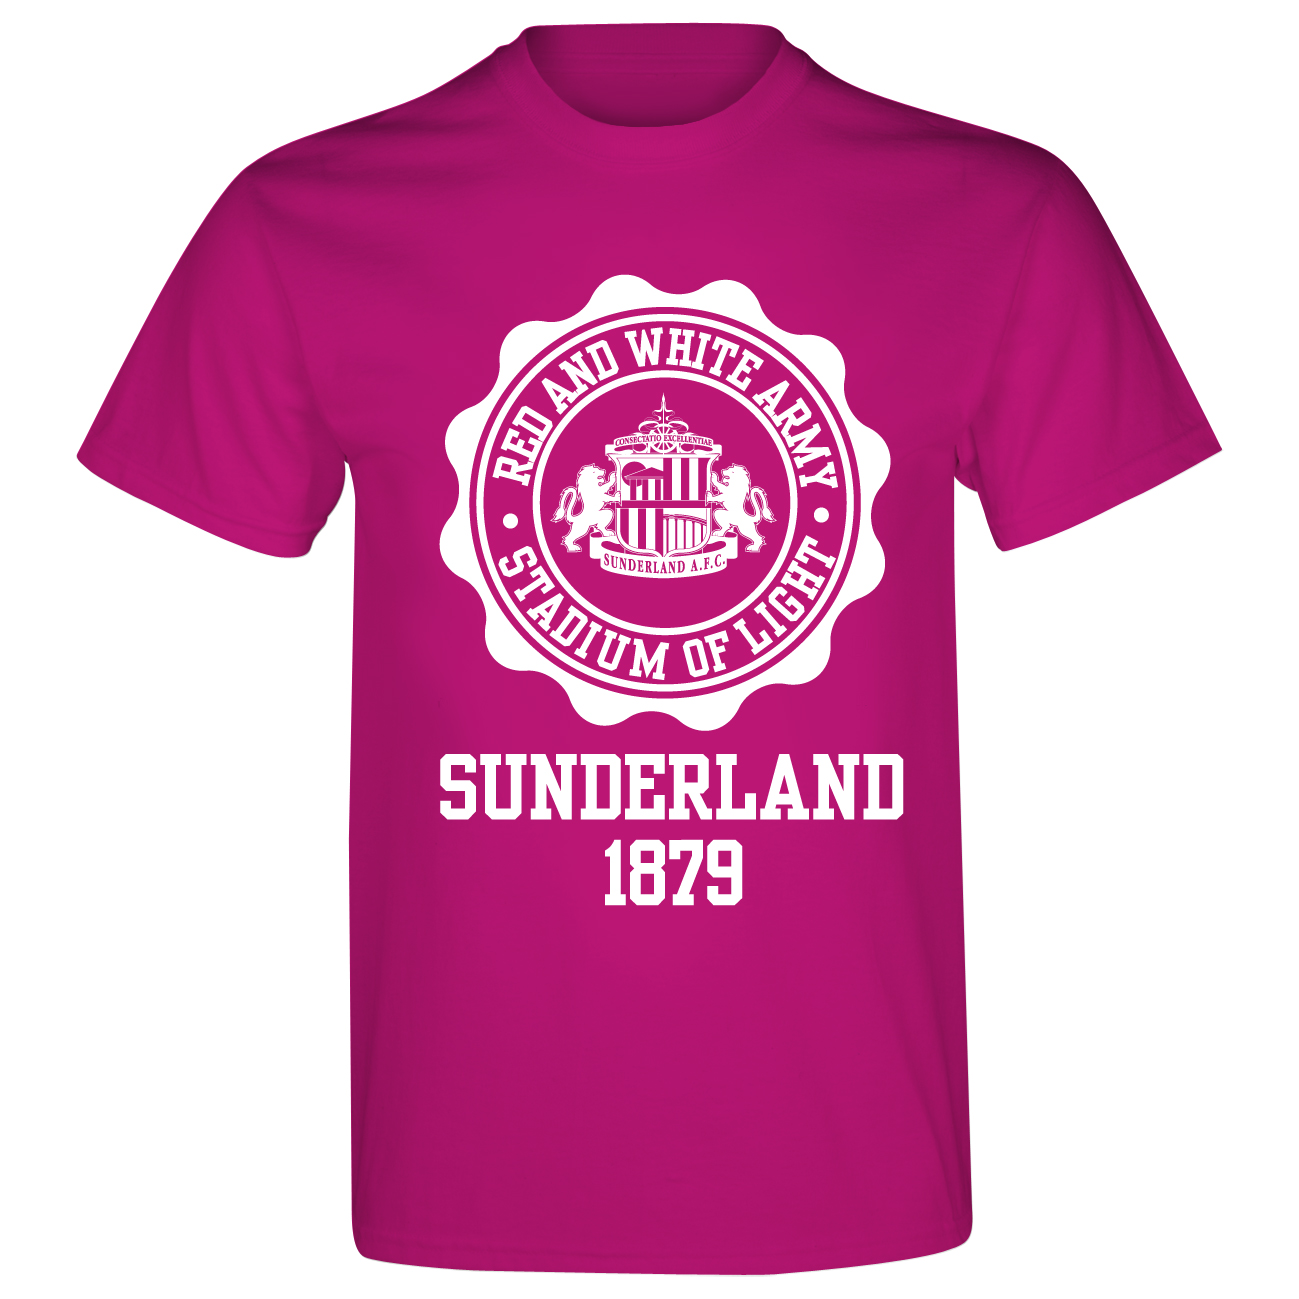 Sunderland 2for£15 Rosette T-Shirt - Pink/White -Junior